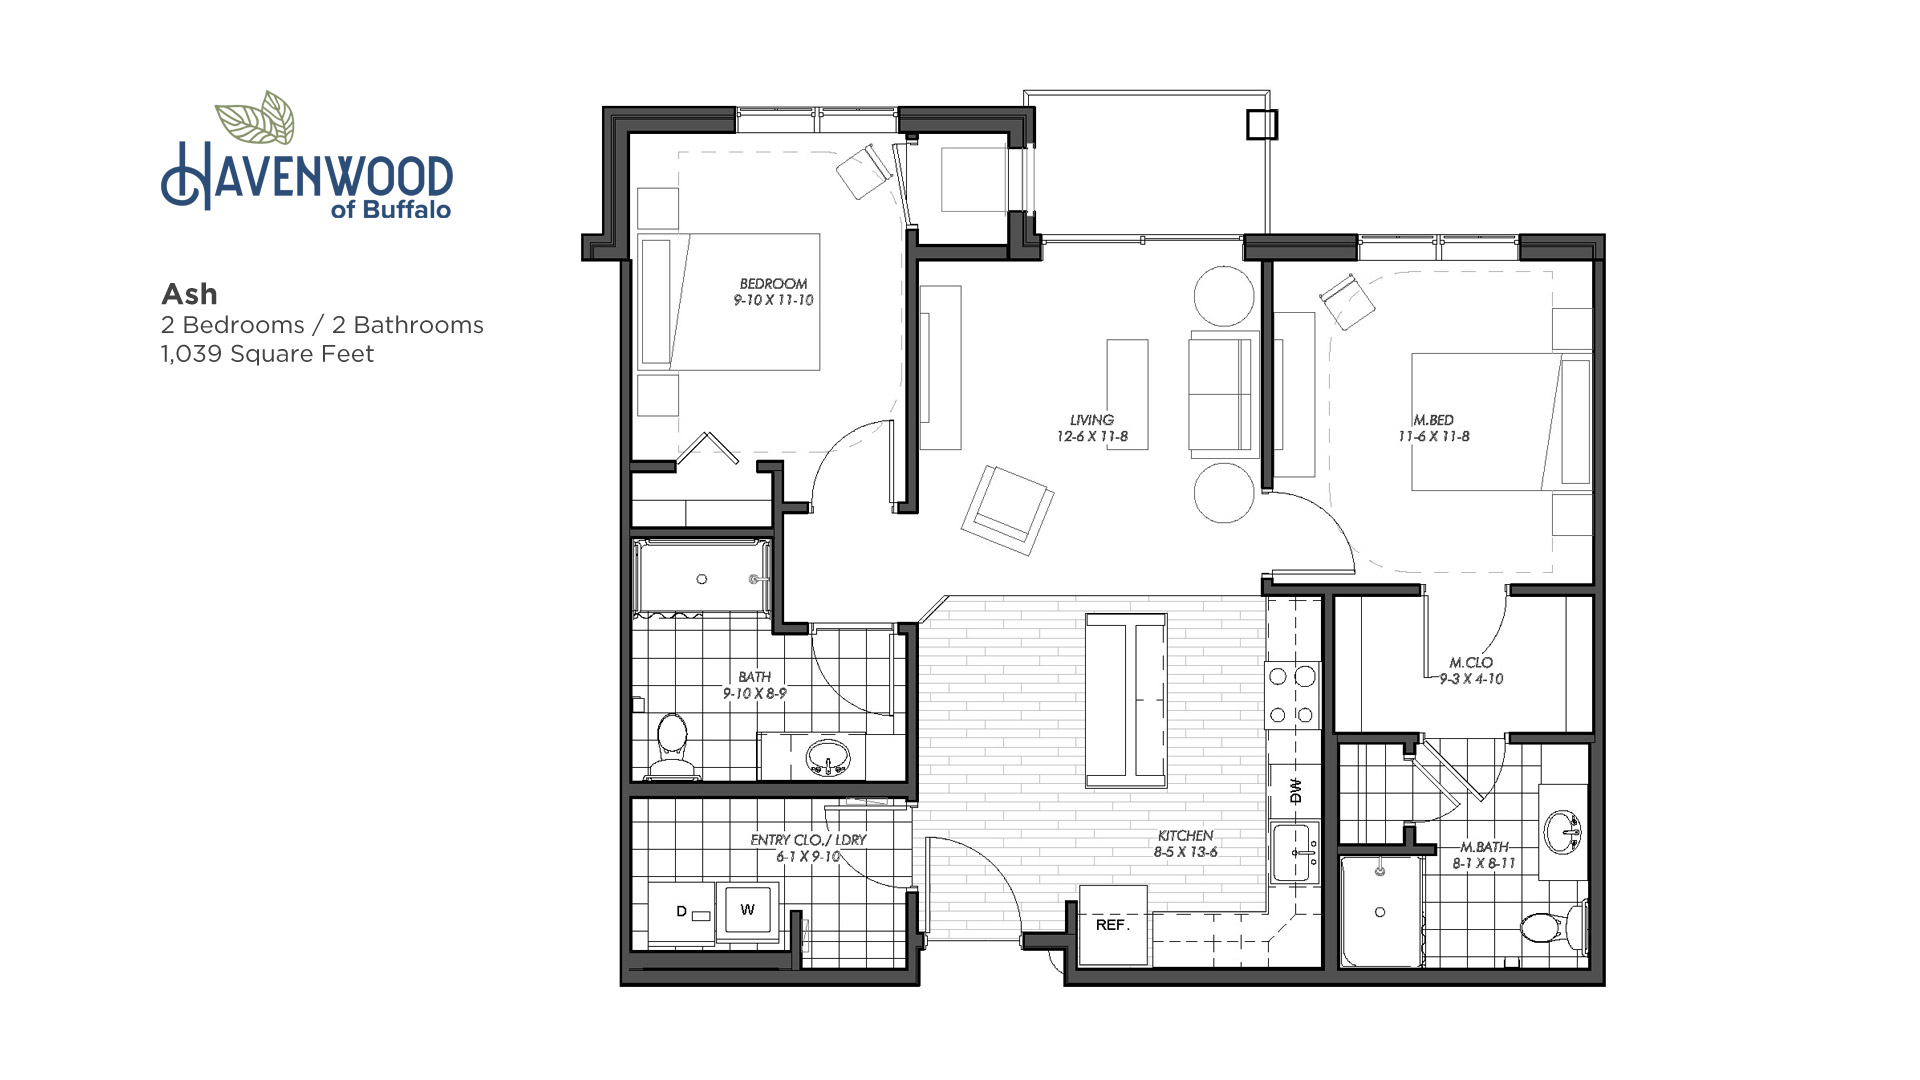 Havenwood of Buffalo Ash Floor Plan